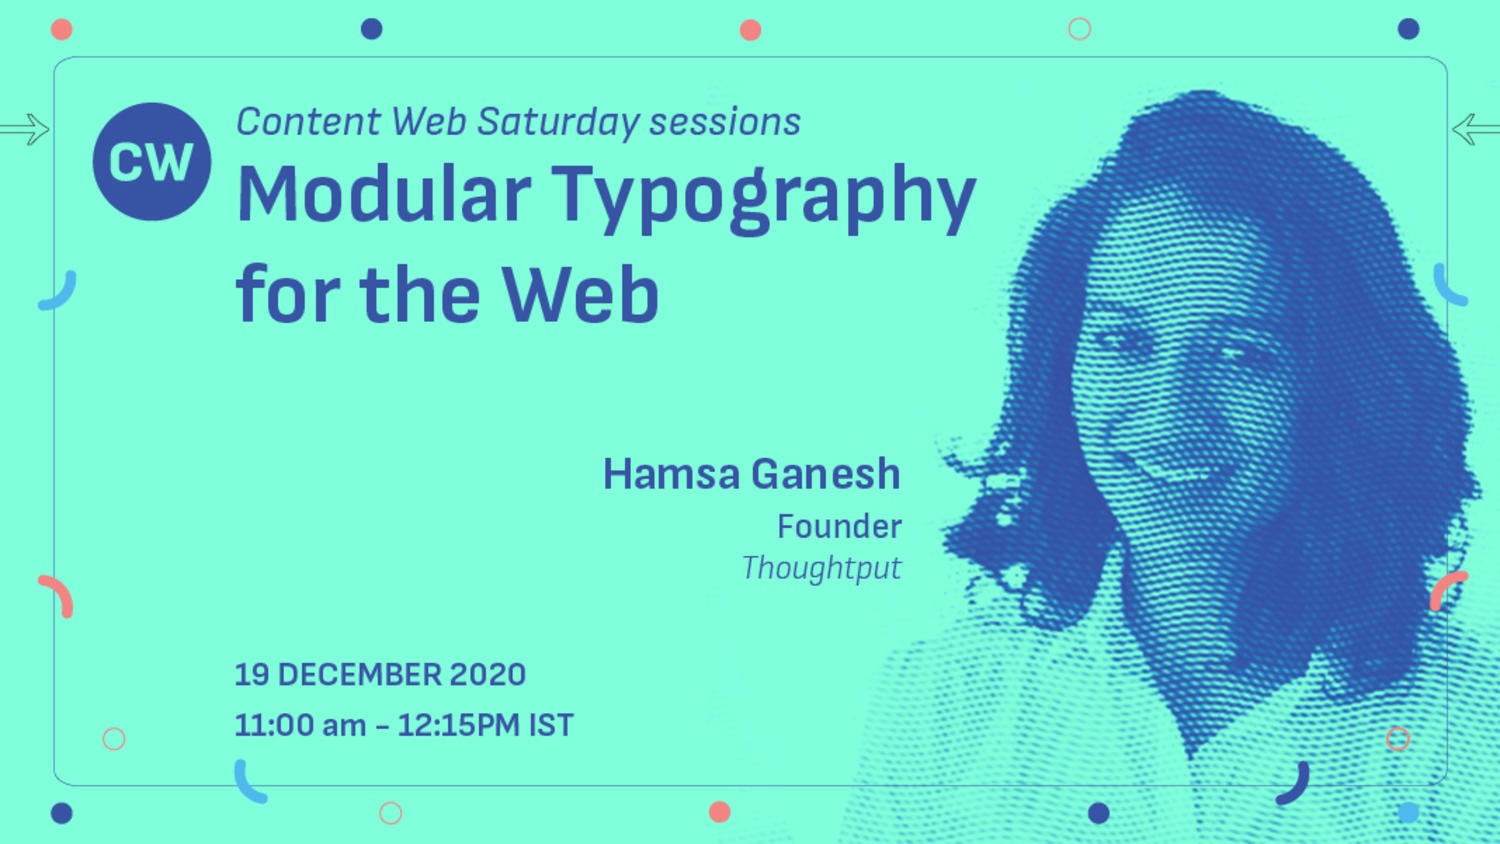 Modular Typography for the Web